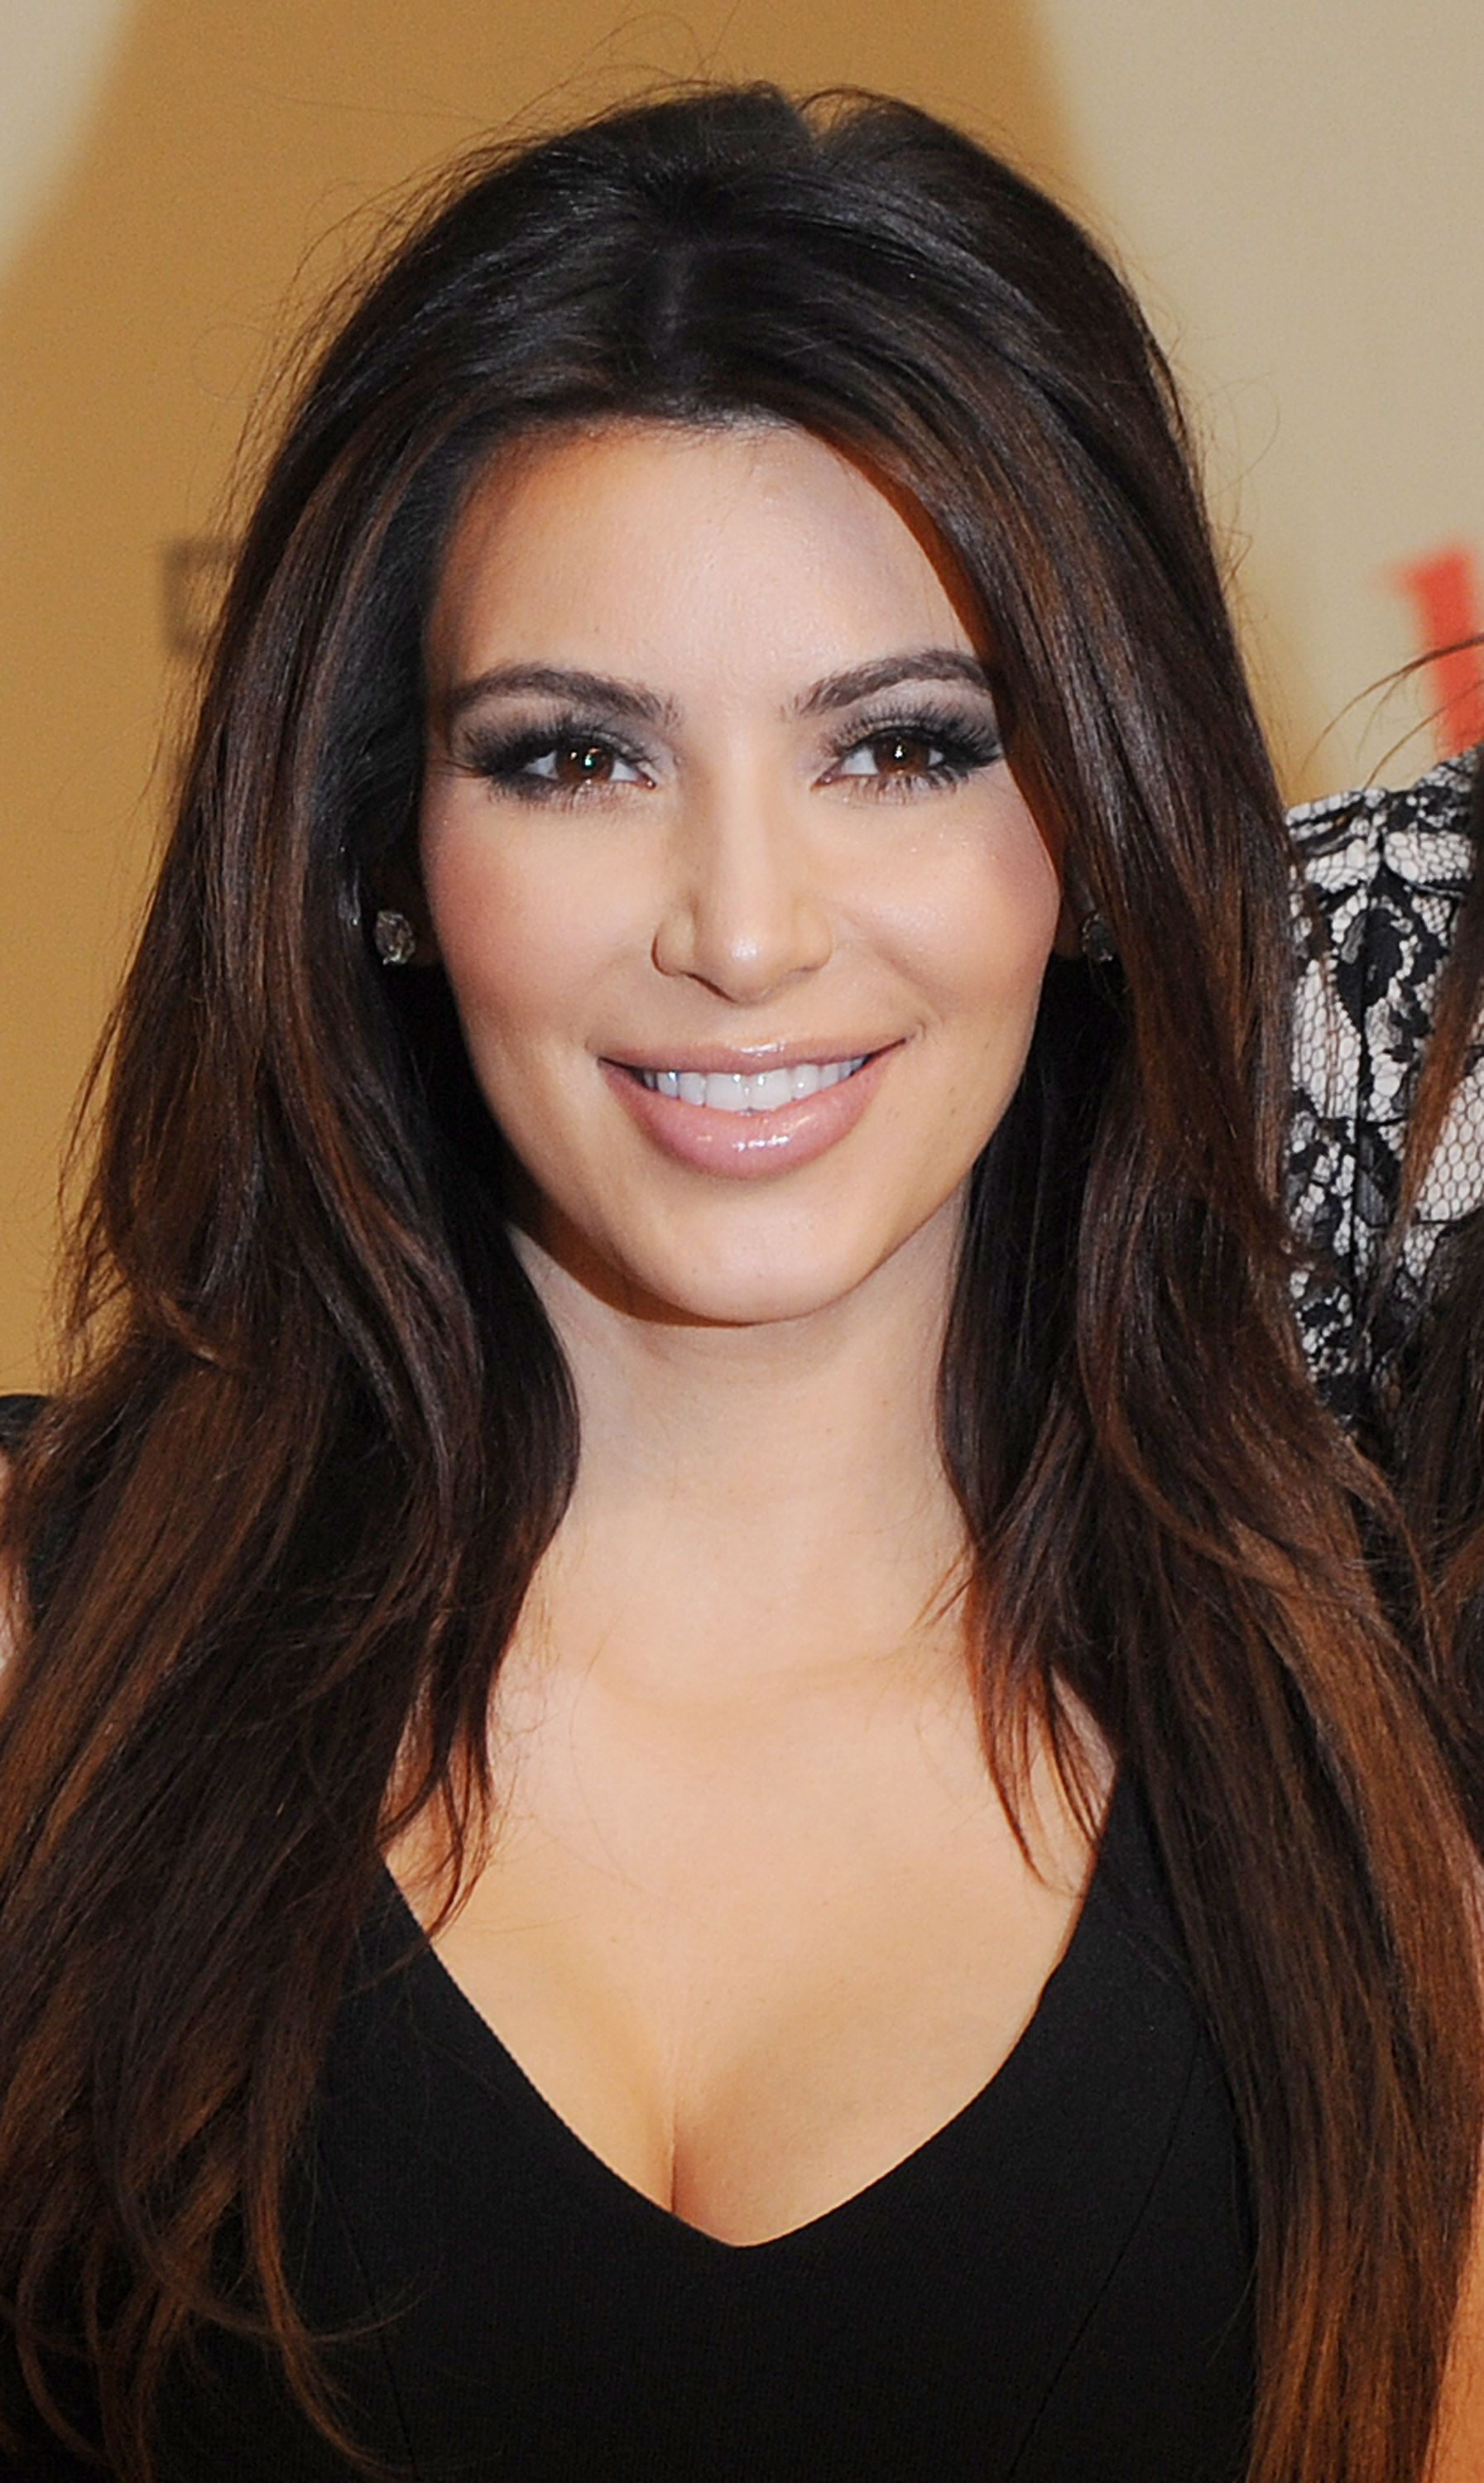 Classic Polished Kim Kardashian Look Smokey Eyes Pale Pink Lips